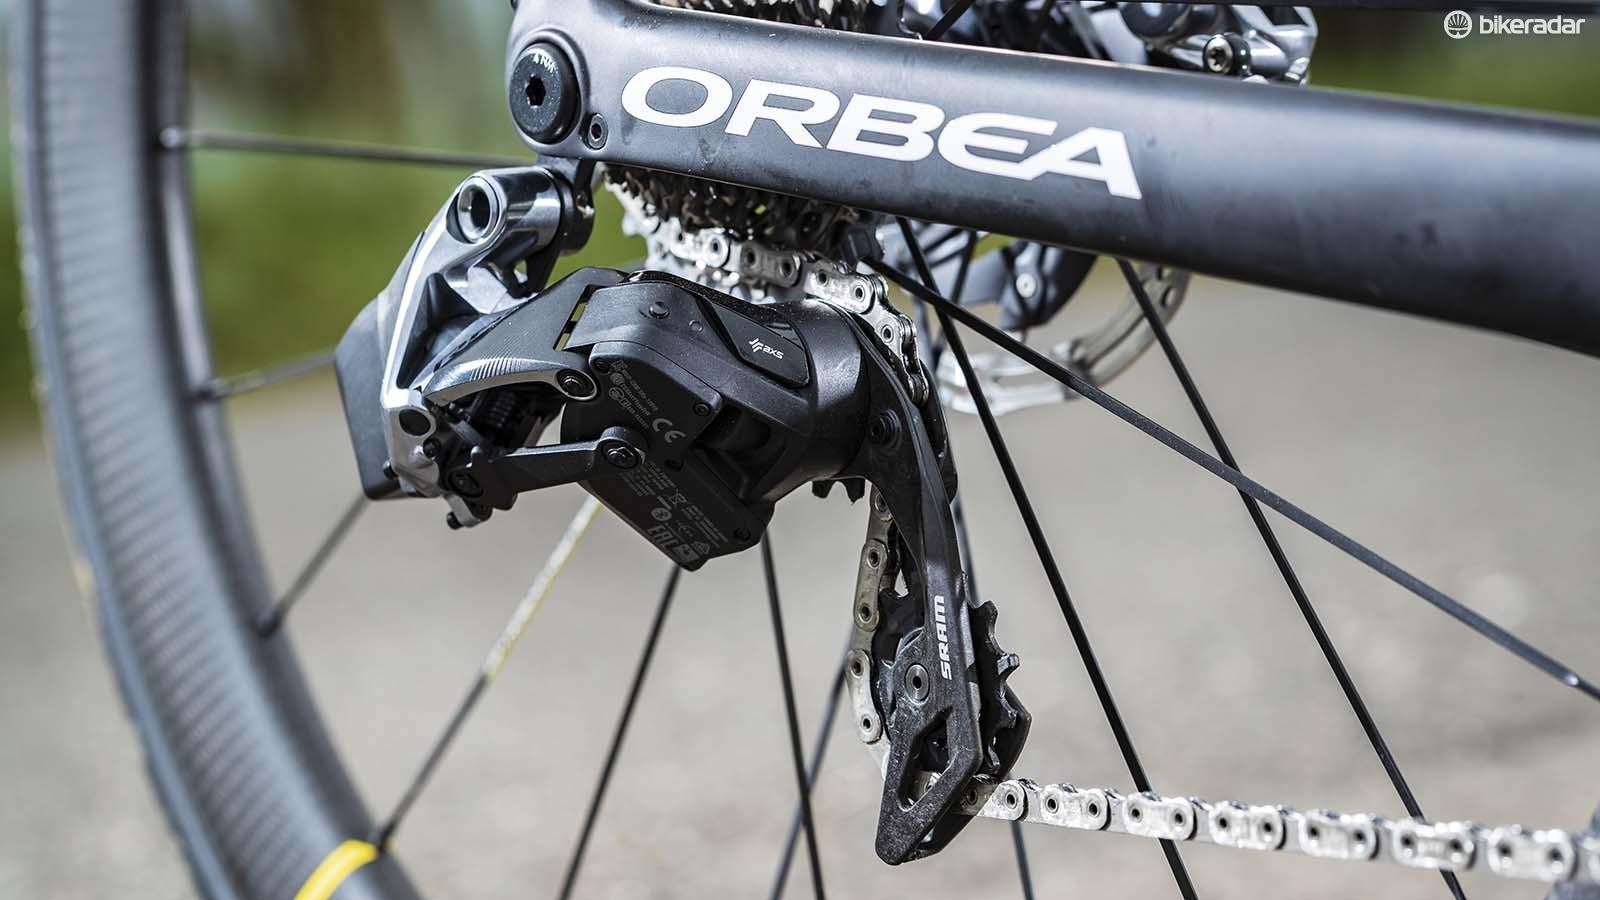 The new rear mech uses the exiting eTap battery as does the front mech